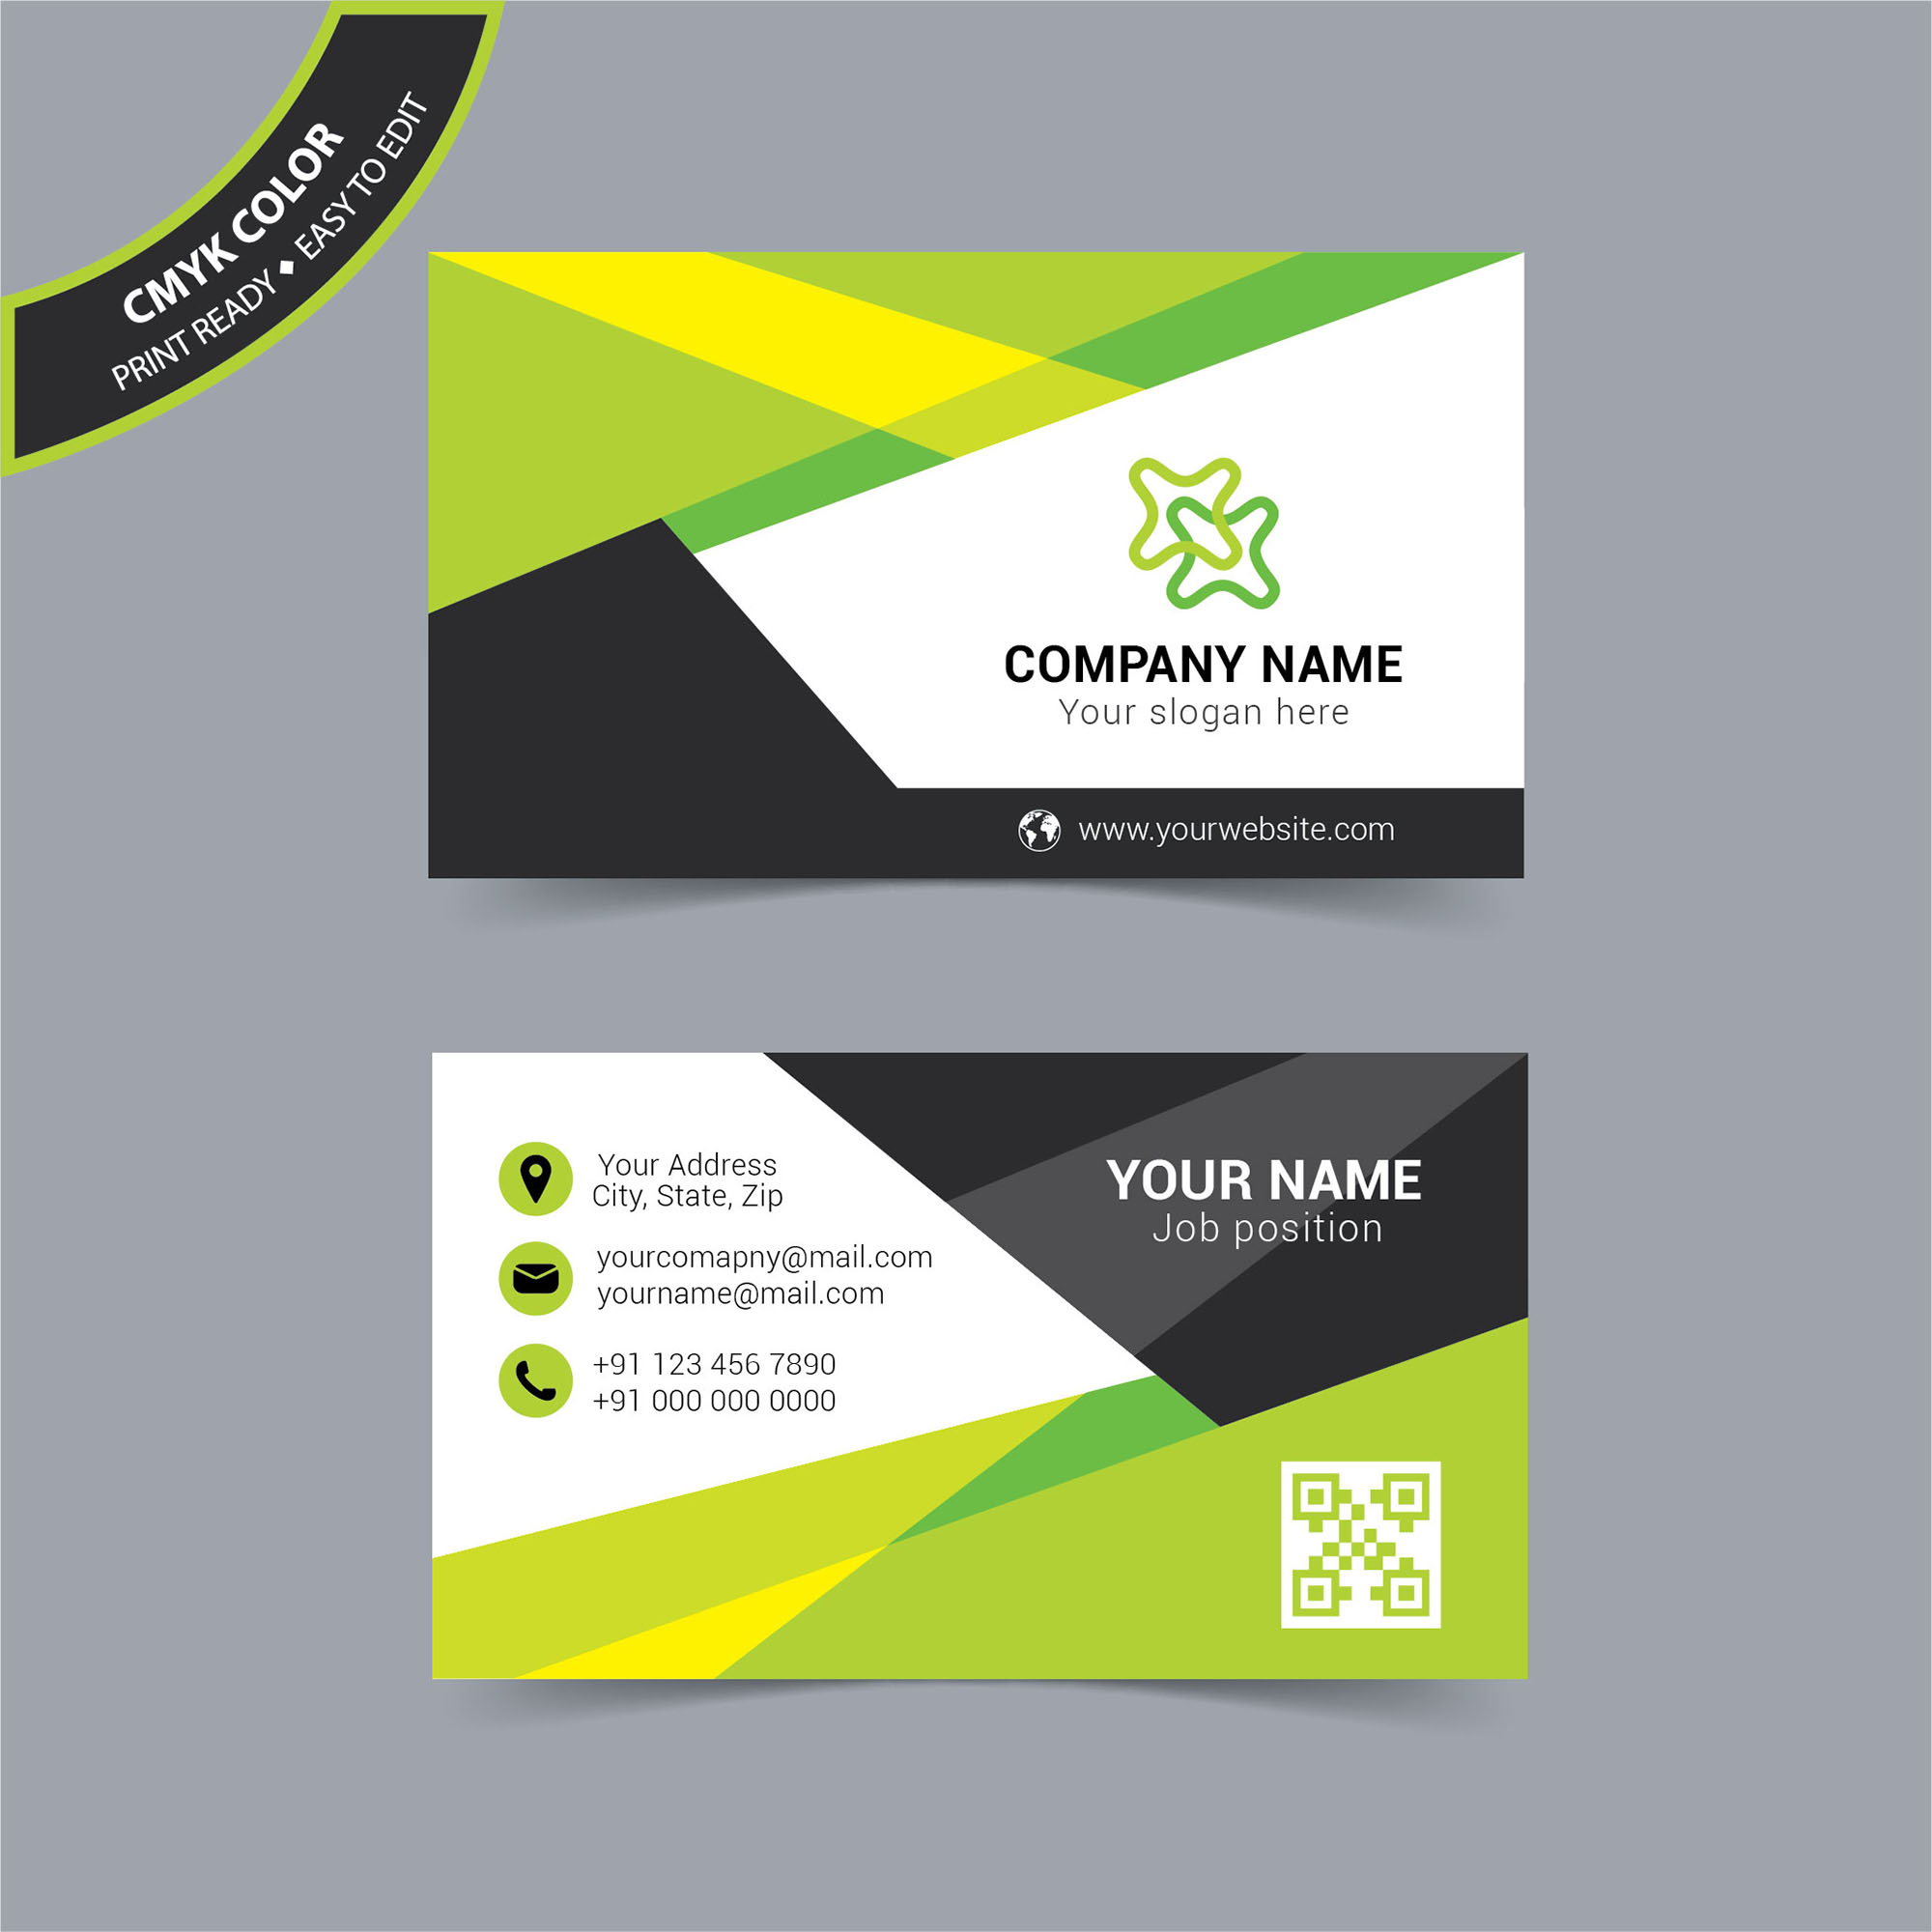 Modern colorful business card design free download wisxi business card business cards business card design business card template design templates wajeb Image collections